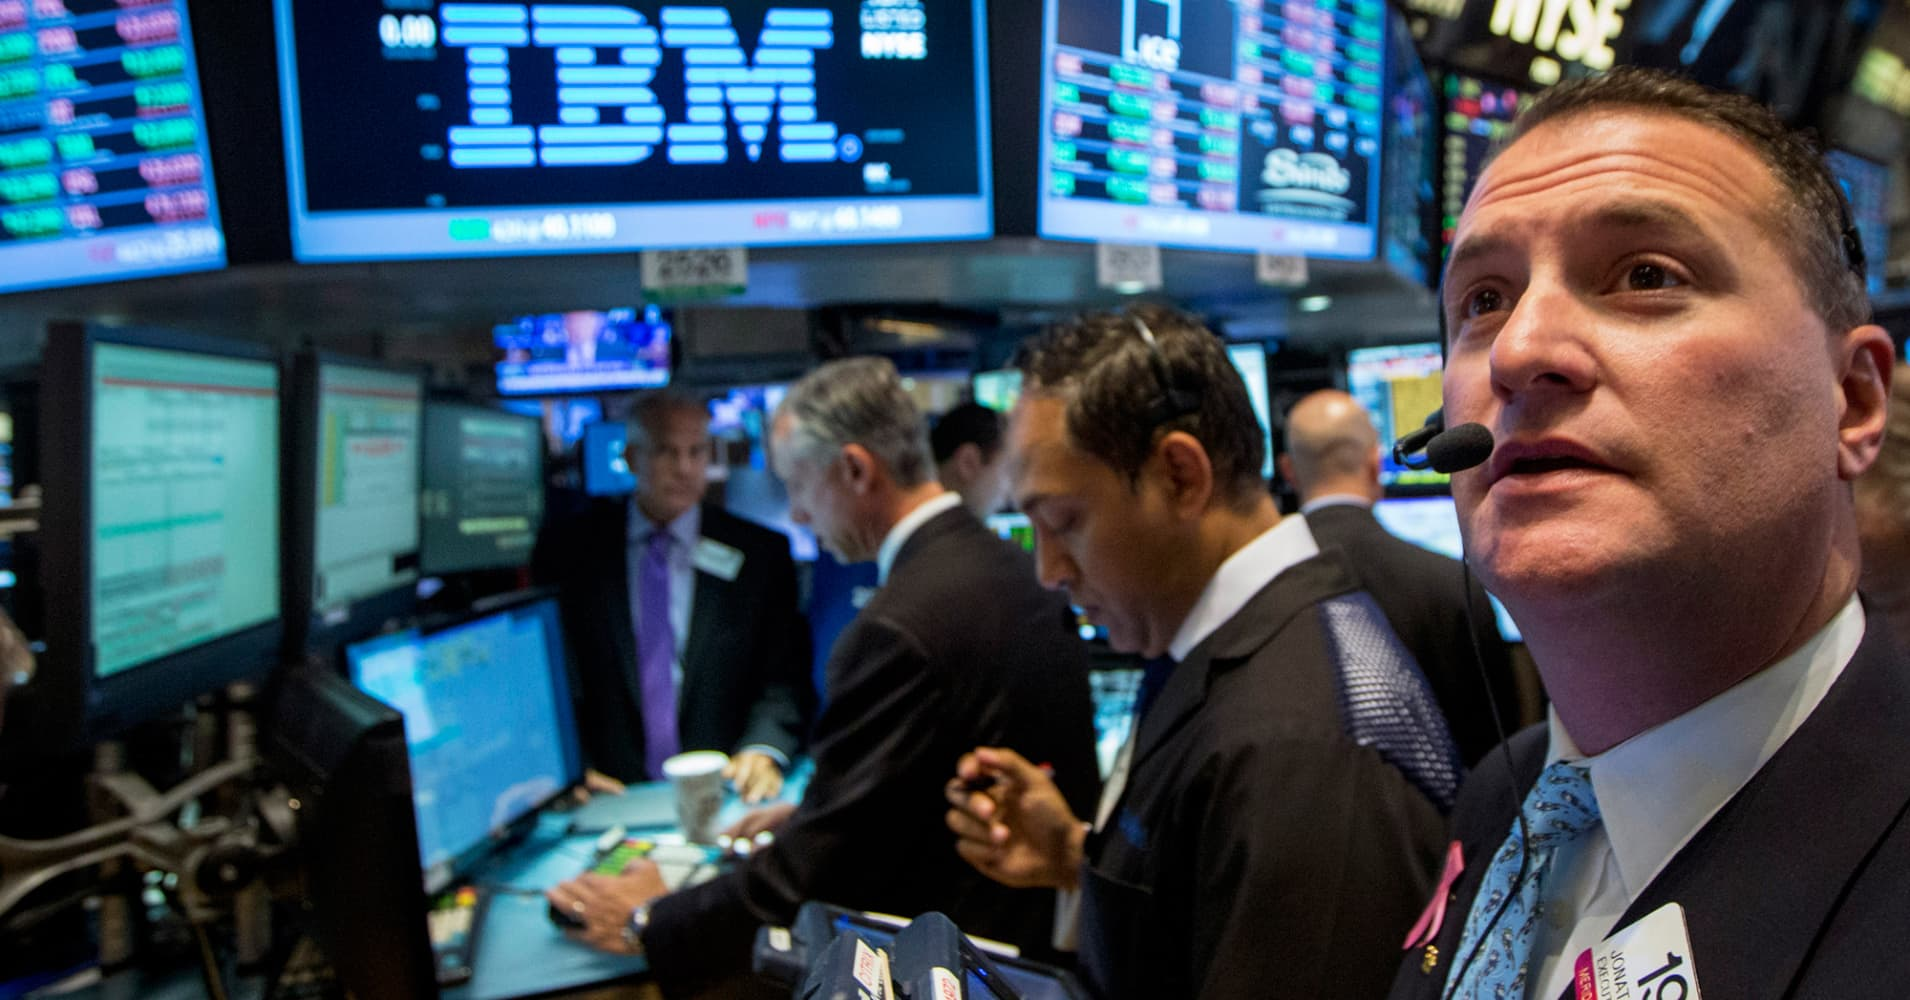 If you invested $1,000 in IBM 10 years ago, here's how much you'd have now